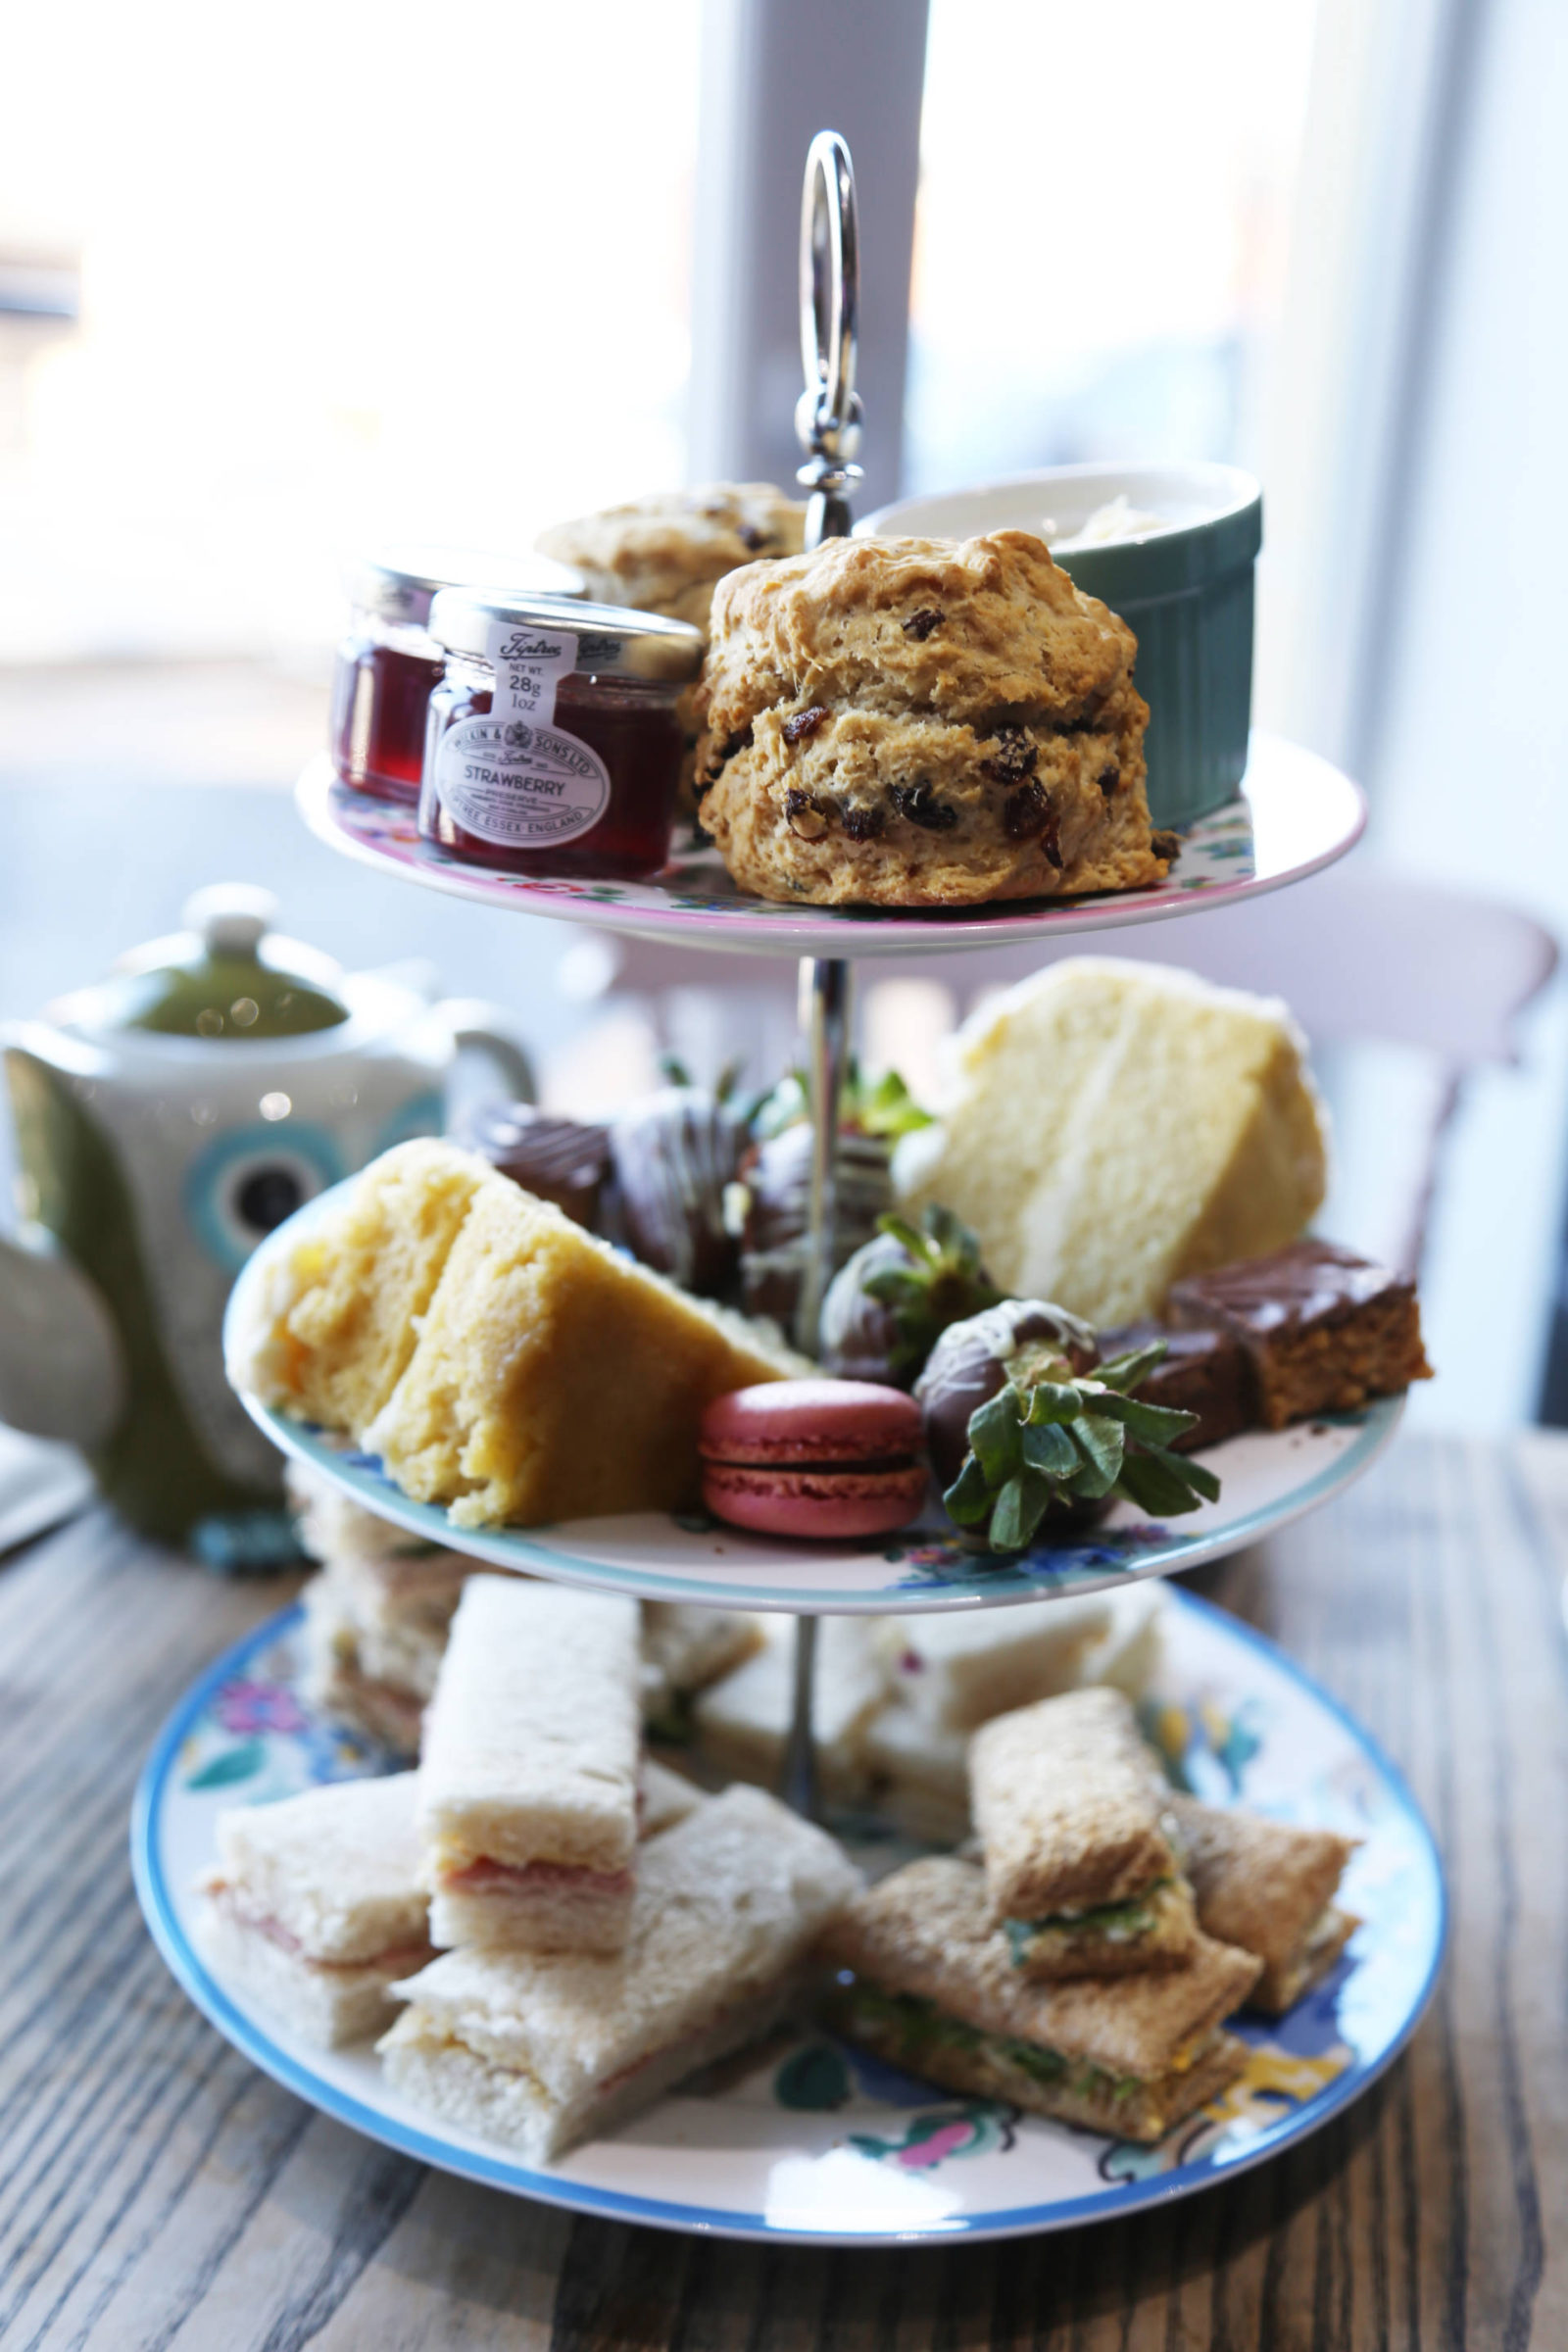 Afternoon Tea at The Joinery | Burnopfield, Newcastle Upon Tyne